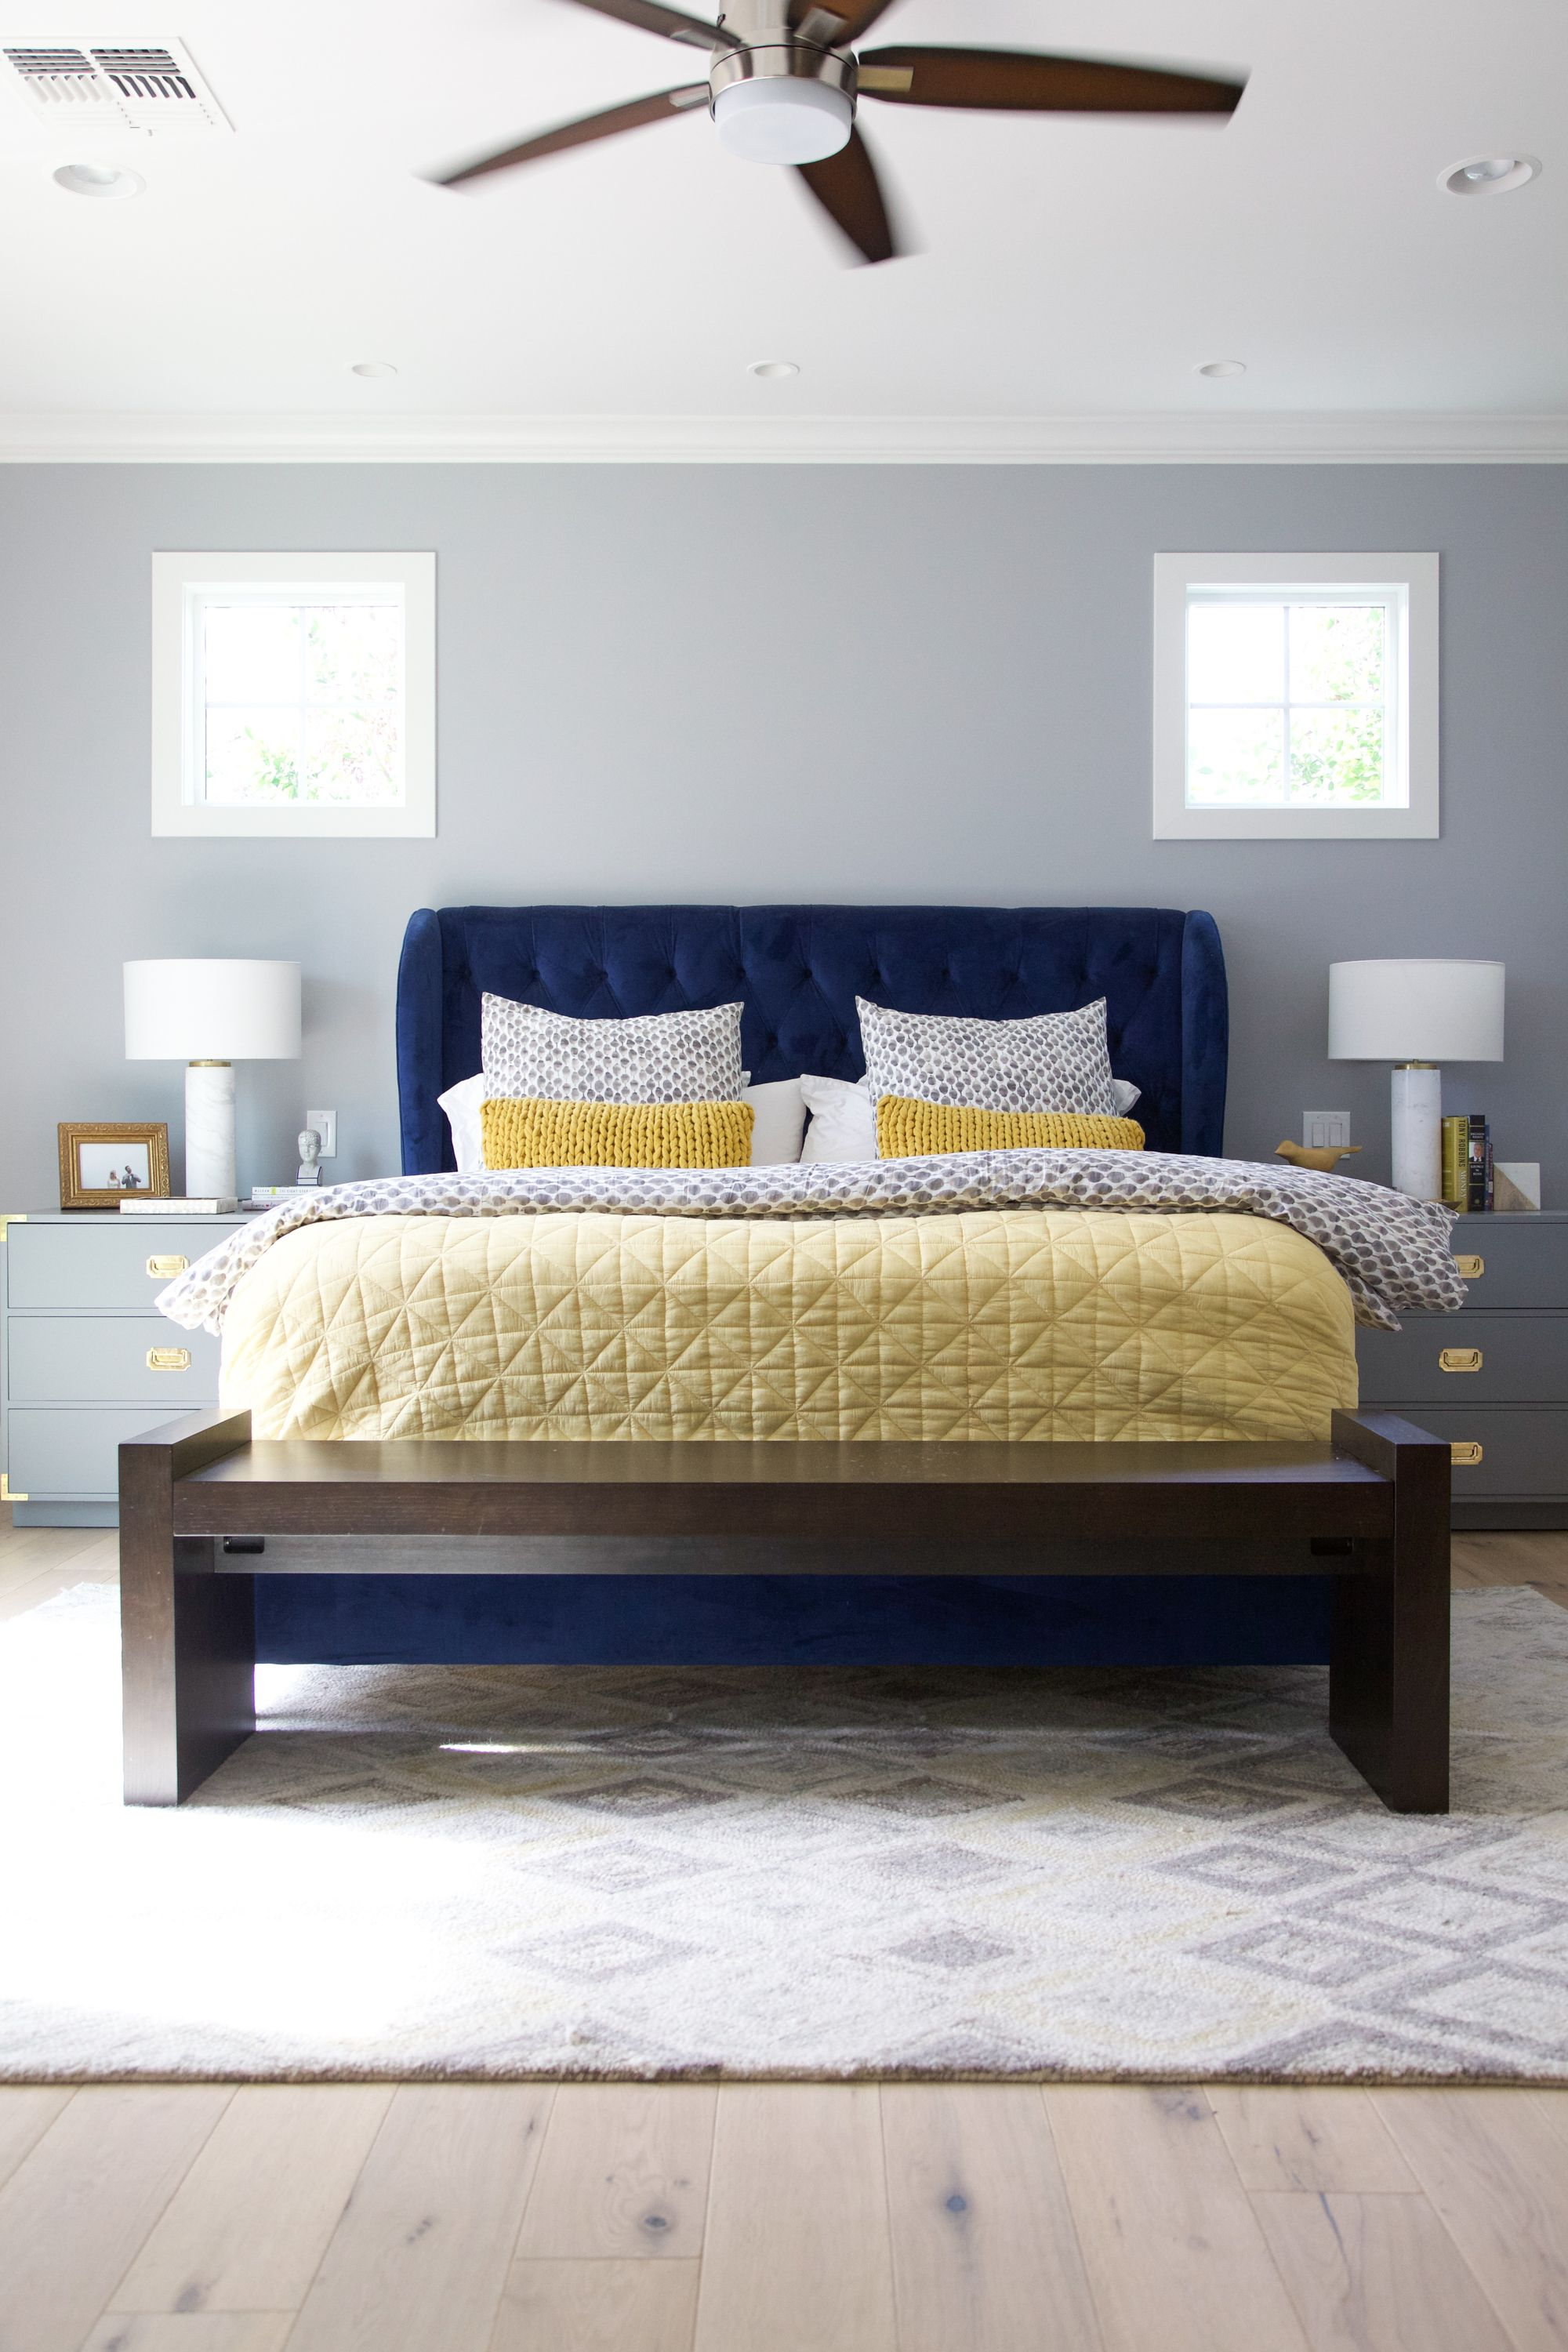 Arcadia Residence Transitional Bedroom With Stunning Royal Blue Upholstered Bed Neutral Gray Wal Blue And Gold Bedroom Blue Bedroom Decor Blue Yellow Bedrooms